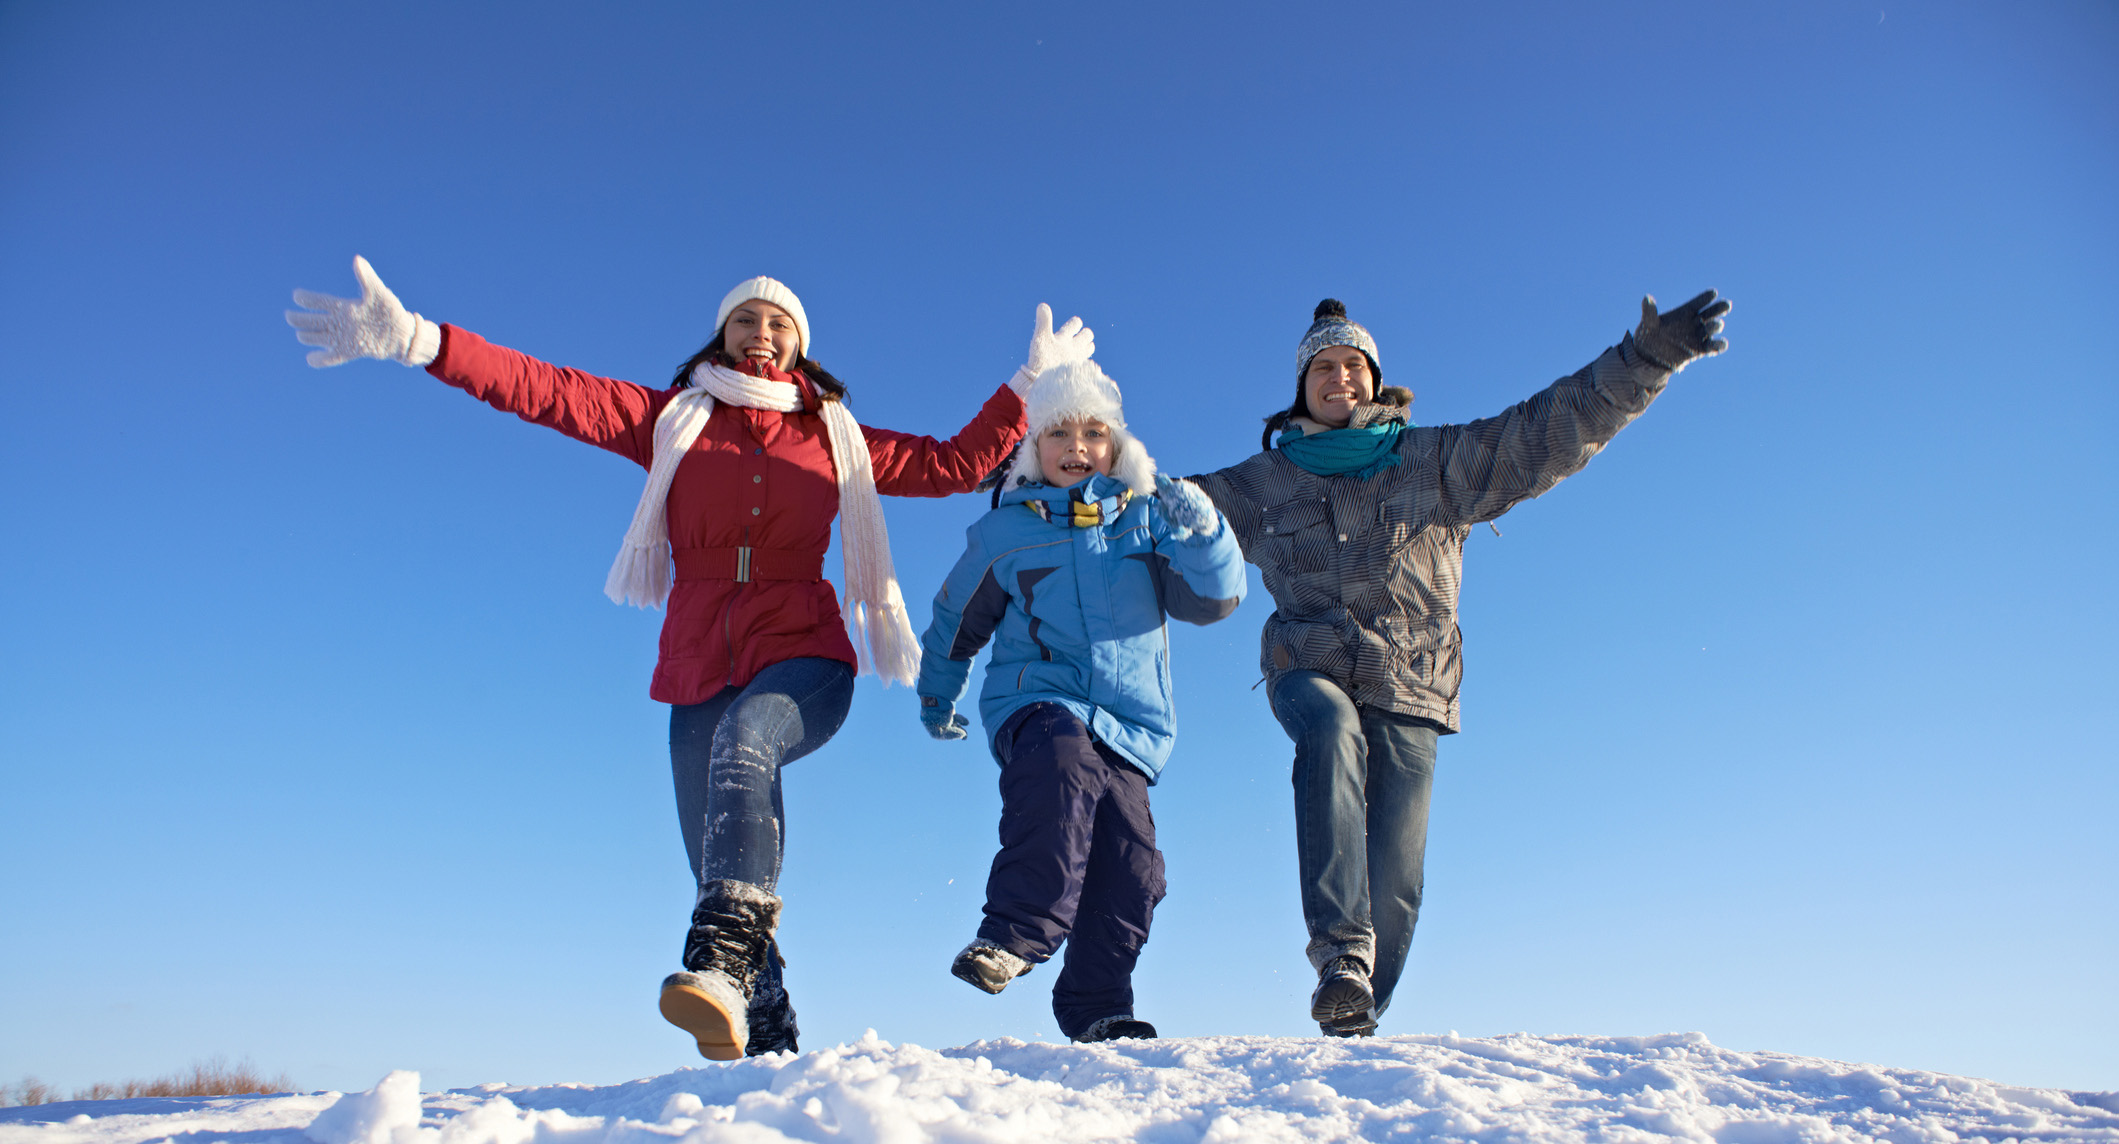 Excited winter vacations